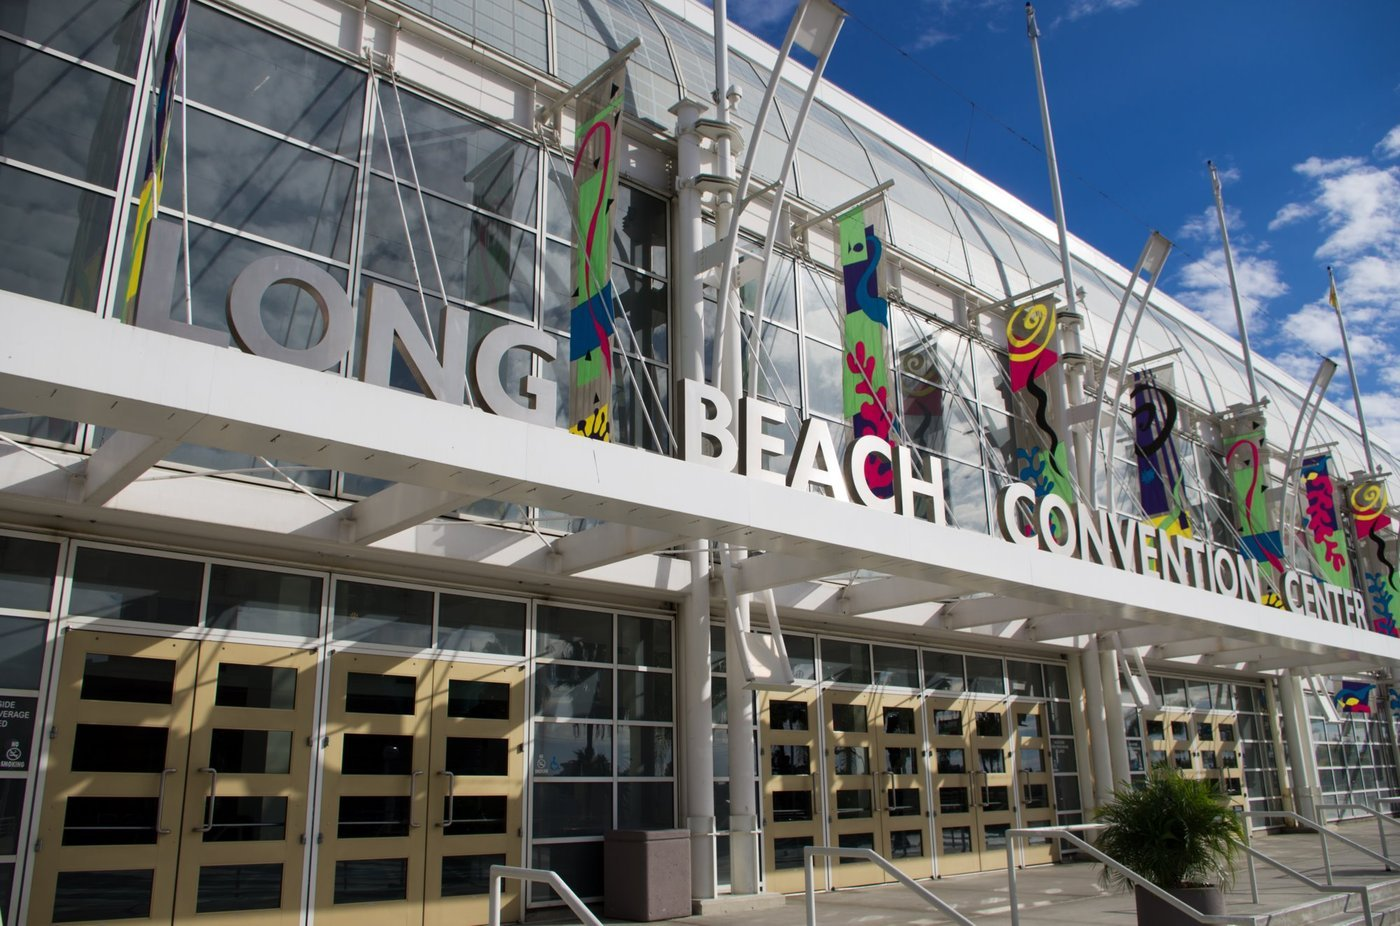 Long Beach Convention Center Long Beach Ca